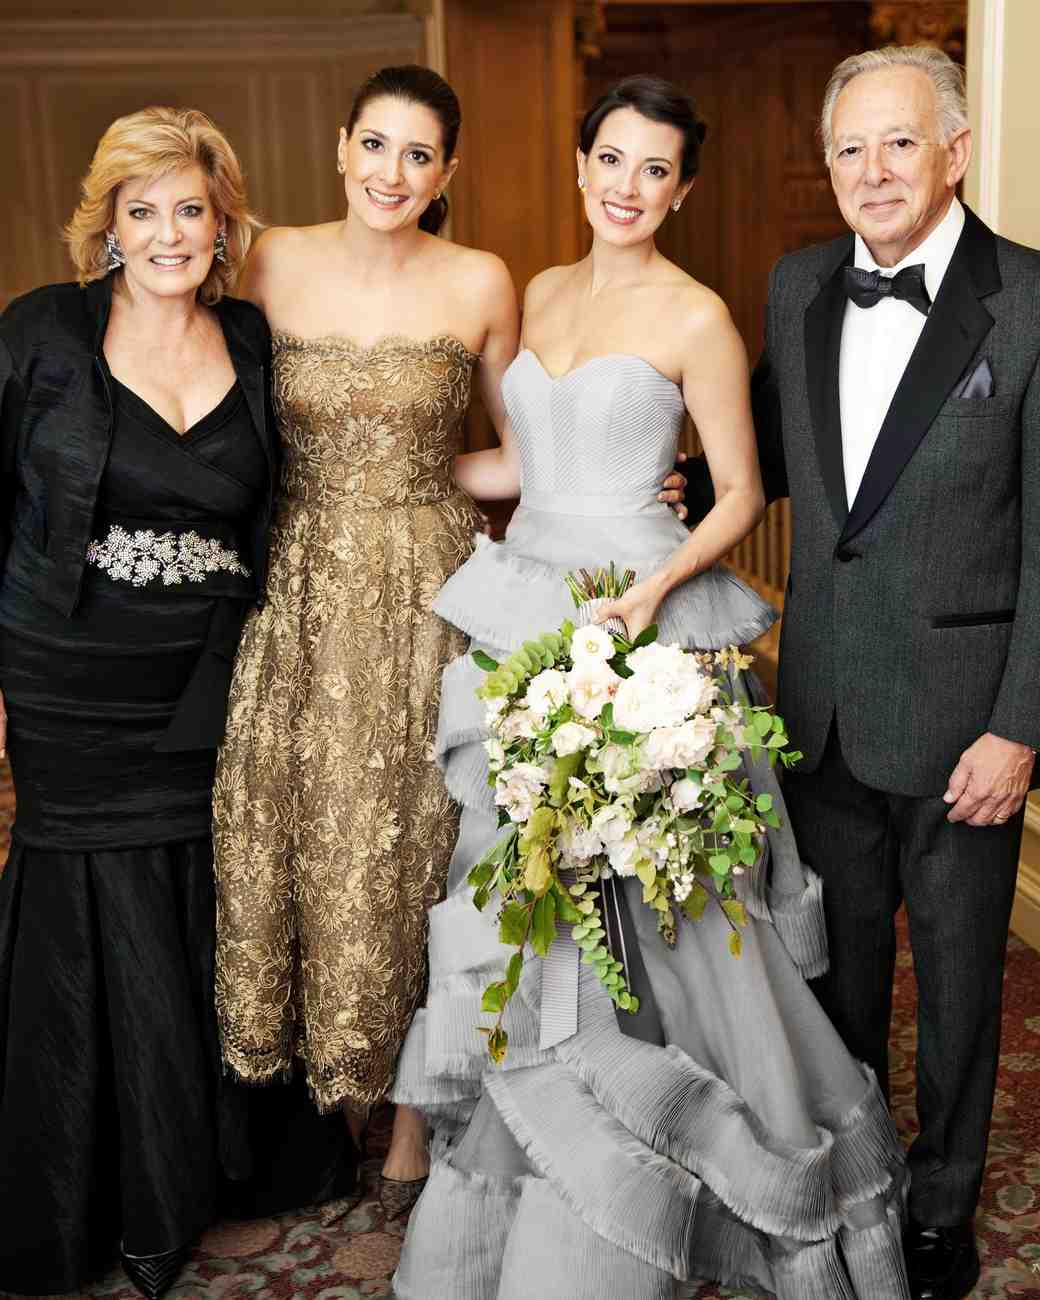 Gray Wedding Dress and Gold Bridesmaid Dress